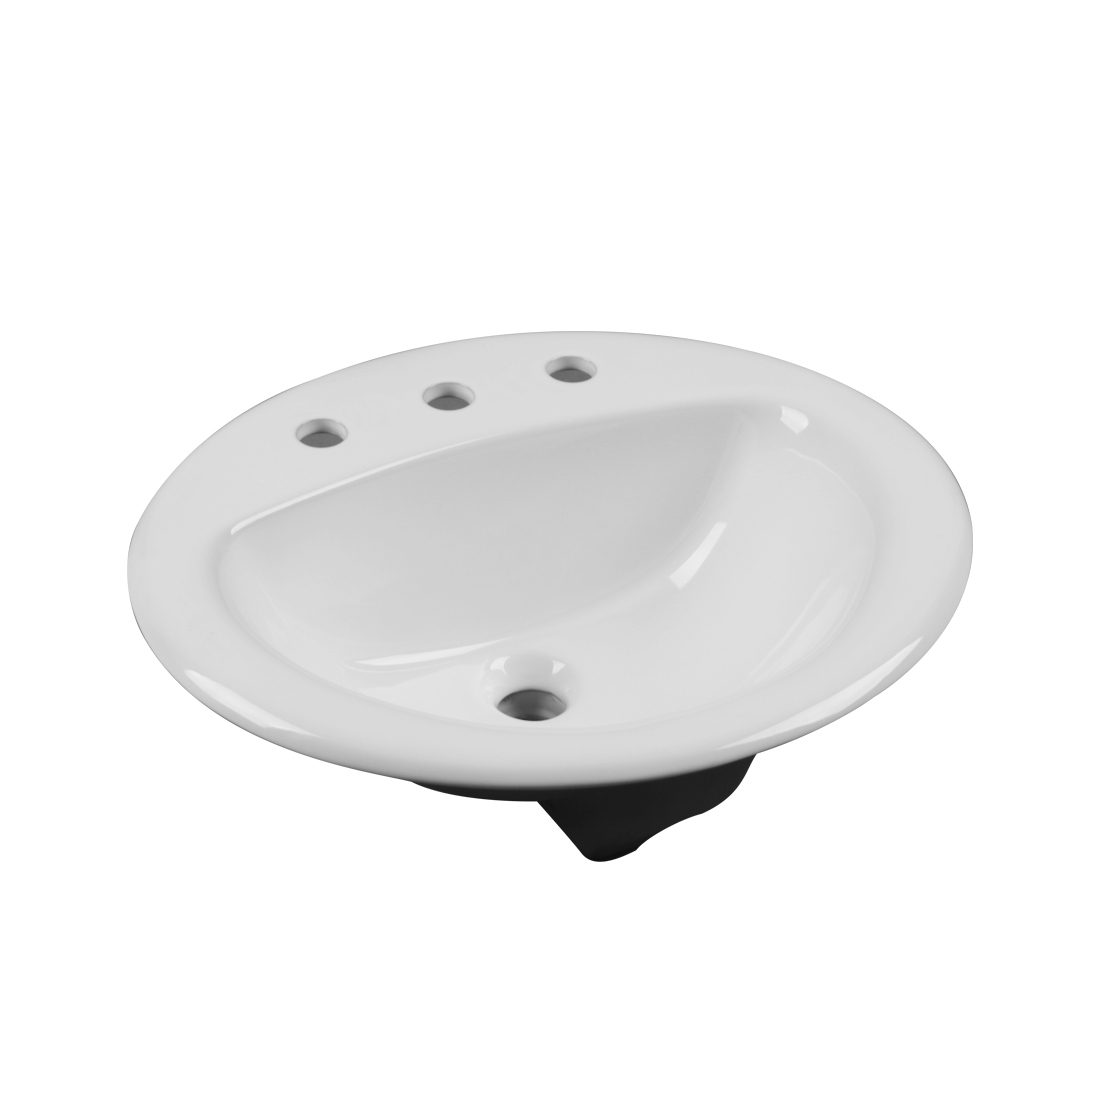 New York Lavatory 3Hole 8inch White Front View